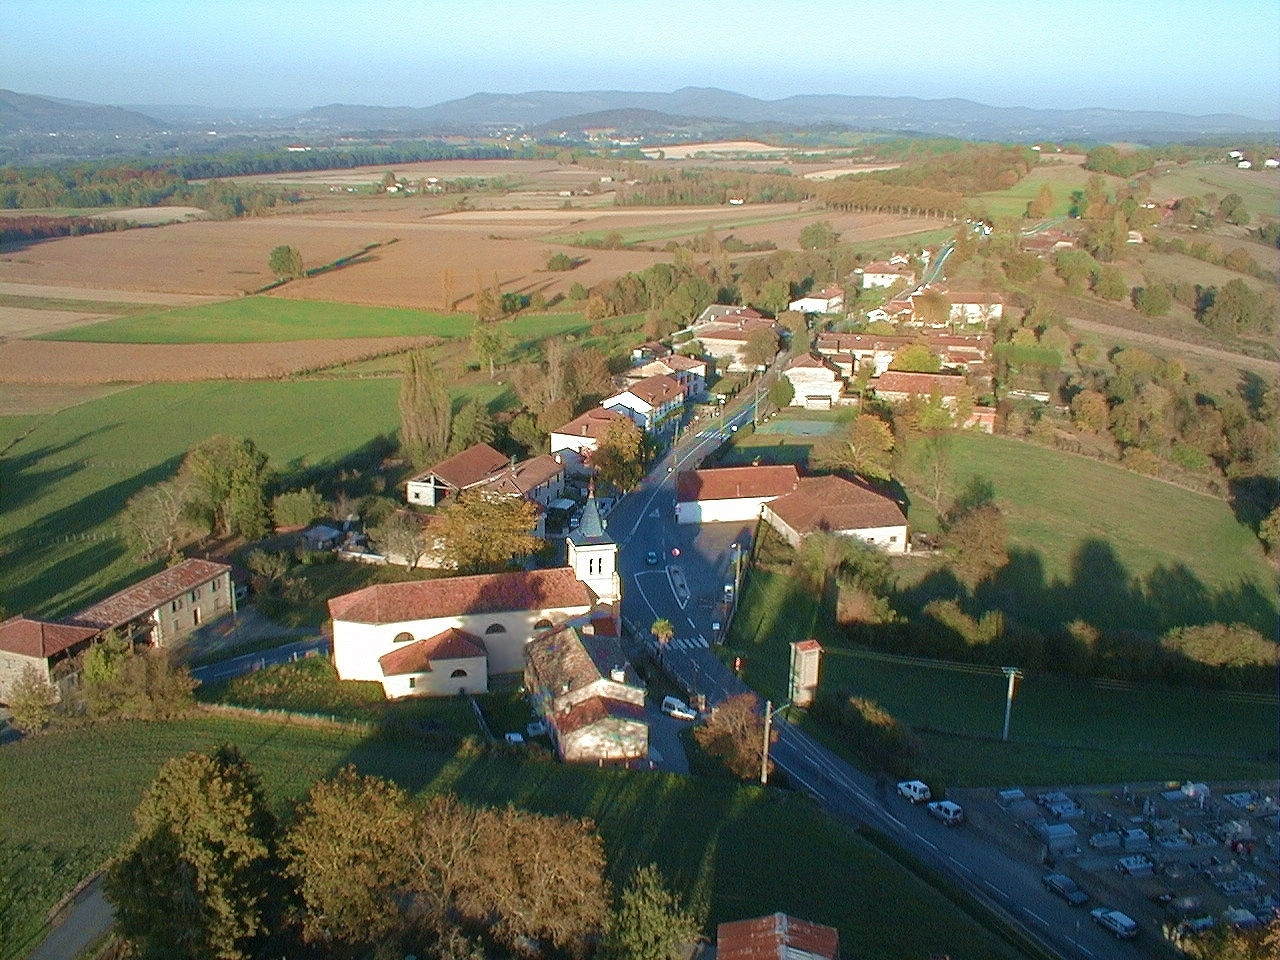 Photo aerienne  de la commune de Figarol